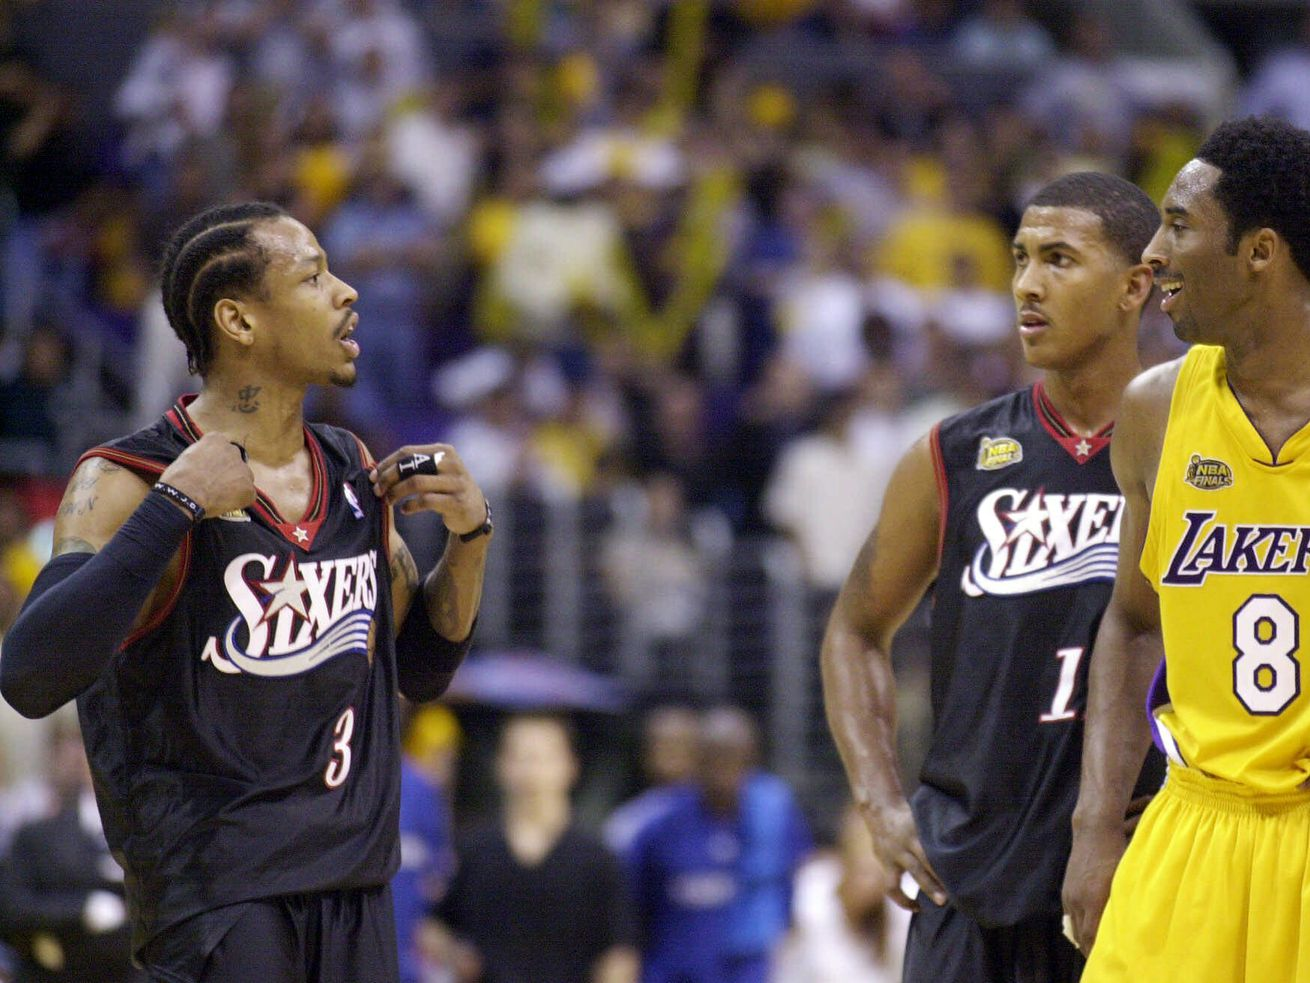 This video shows Allen Iverson and Dwyane Wade hugging after Kobe Bryant tribute